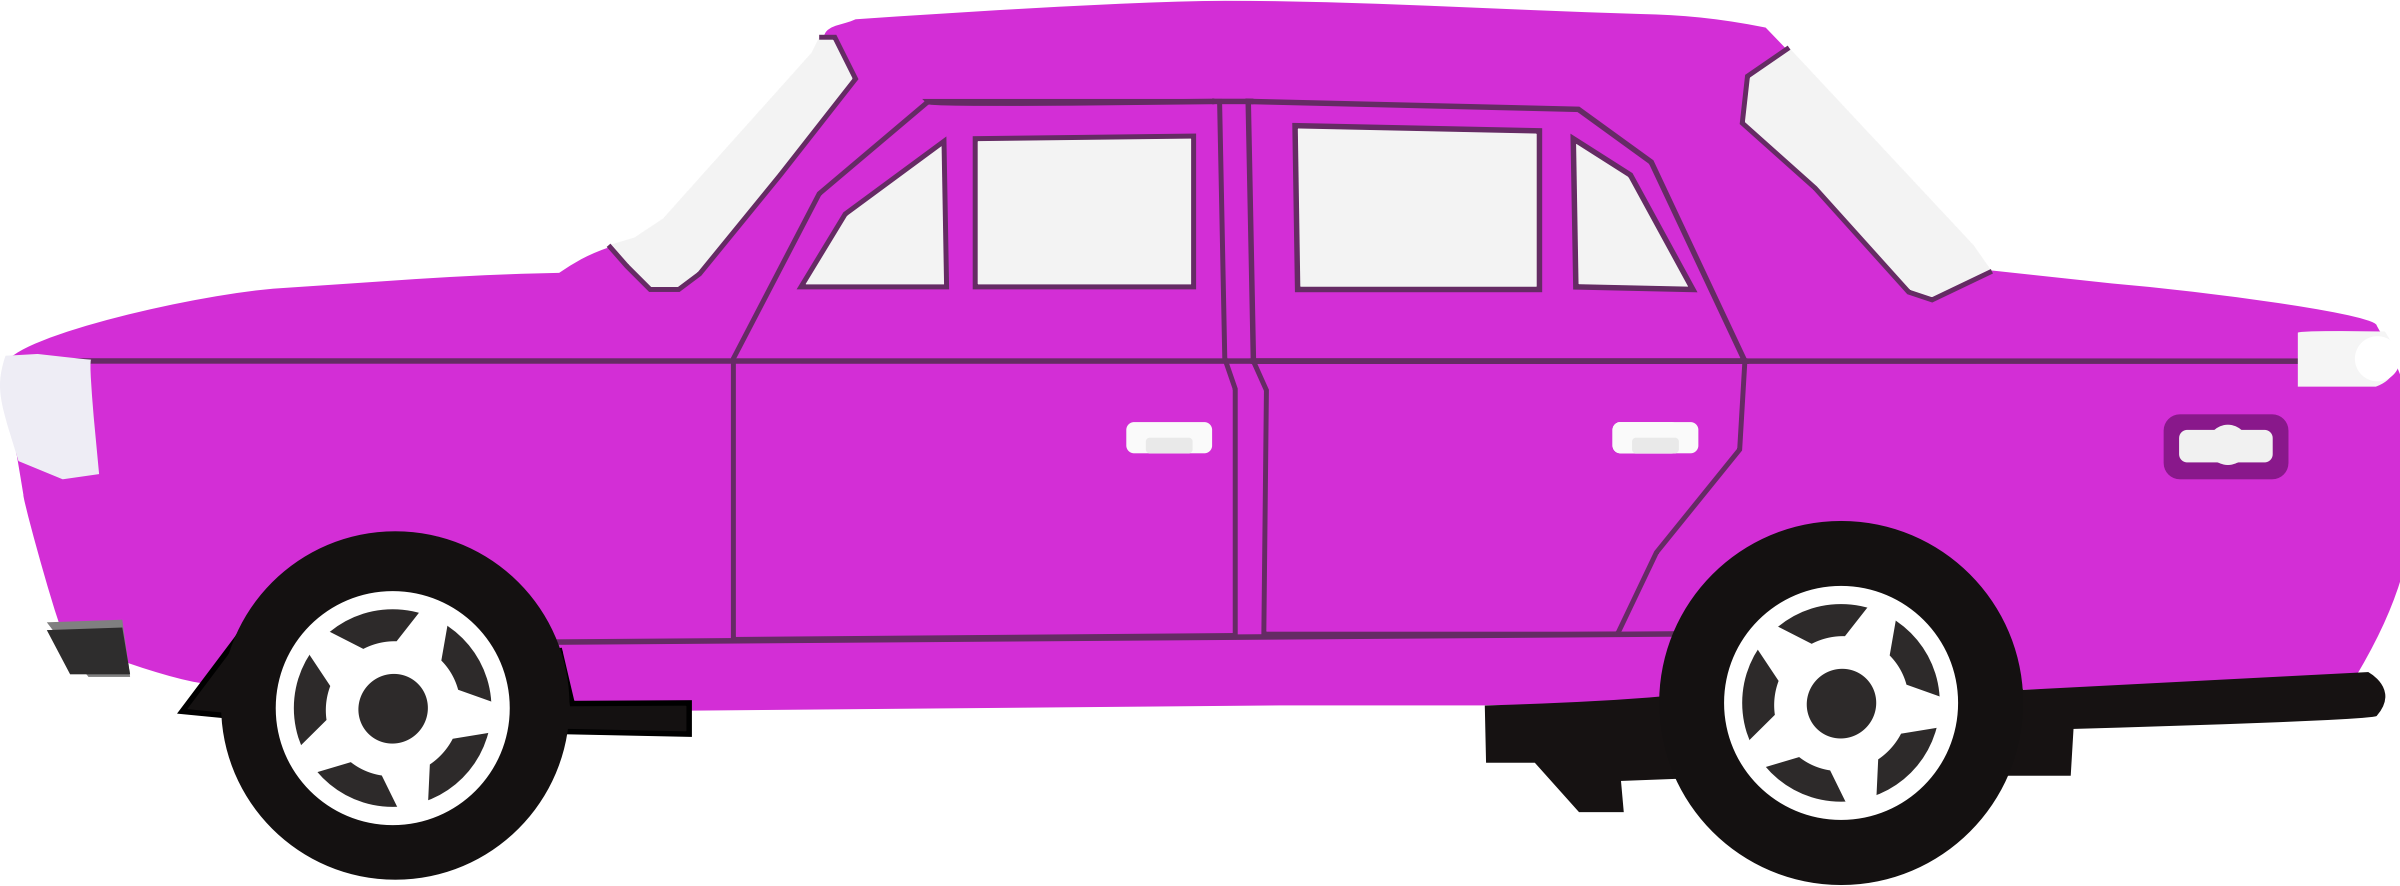 Square clipart car. Purple big image png